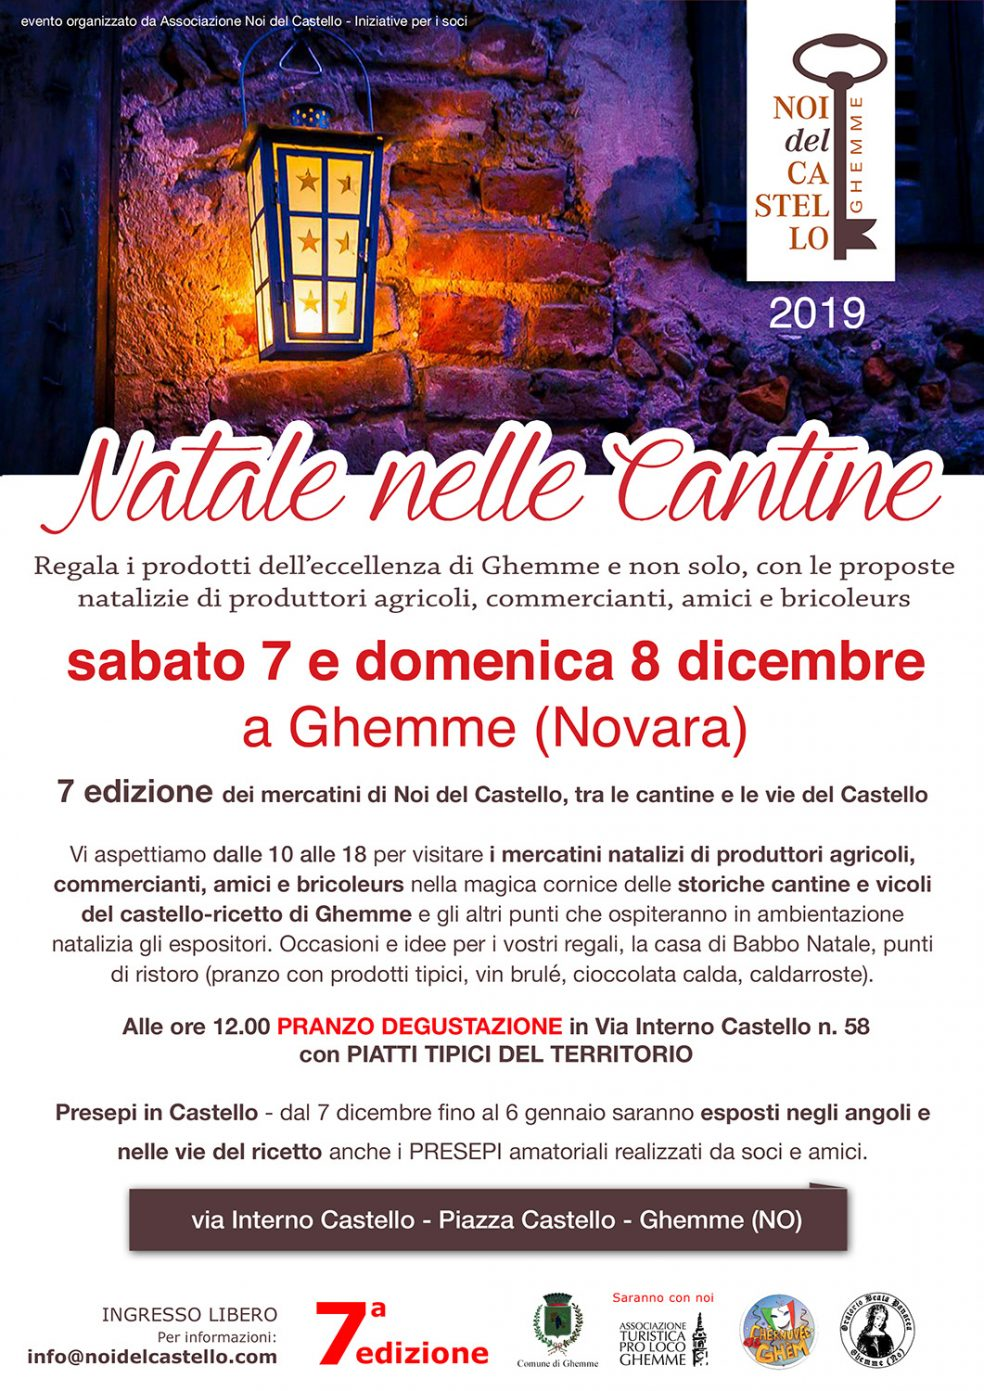 Natale nelle Cantine 2019 Ghemme